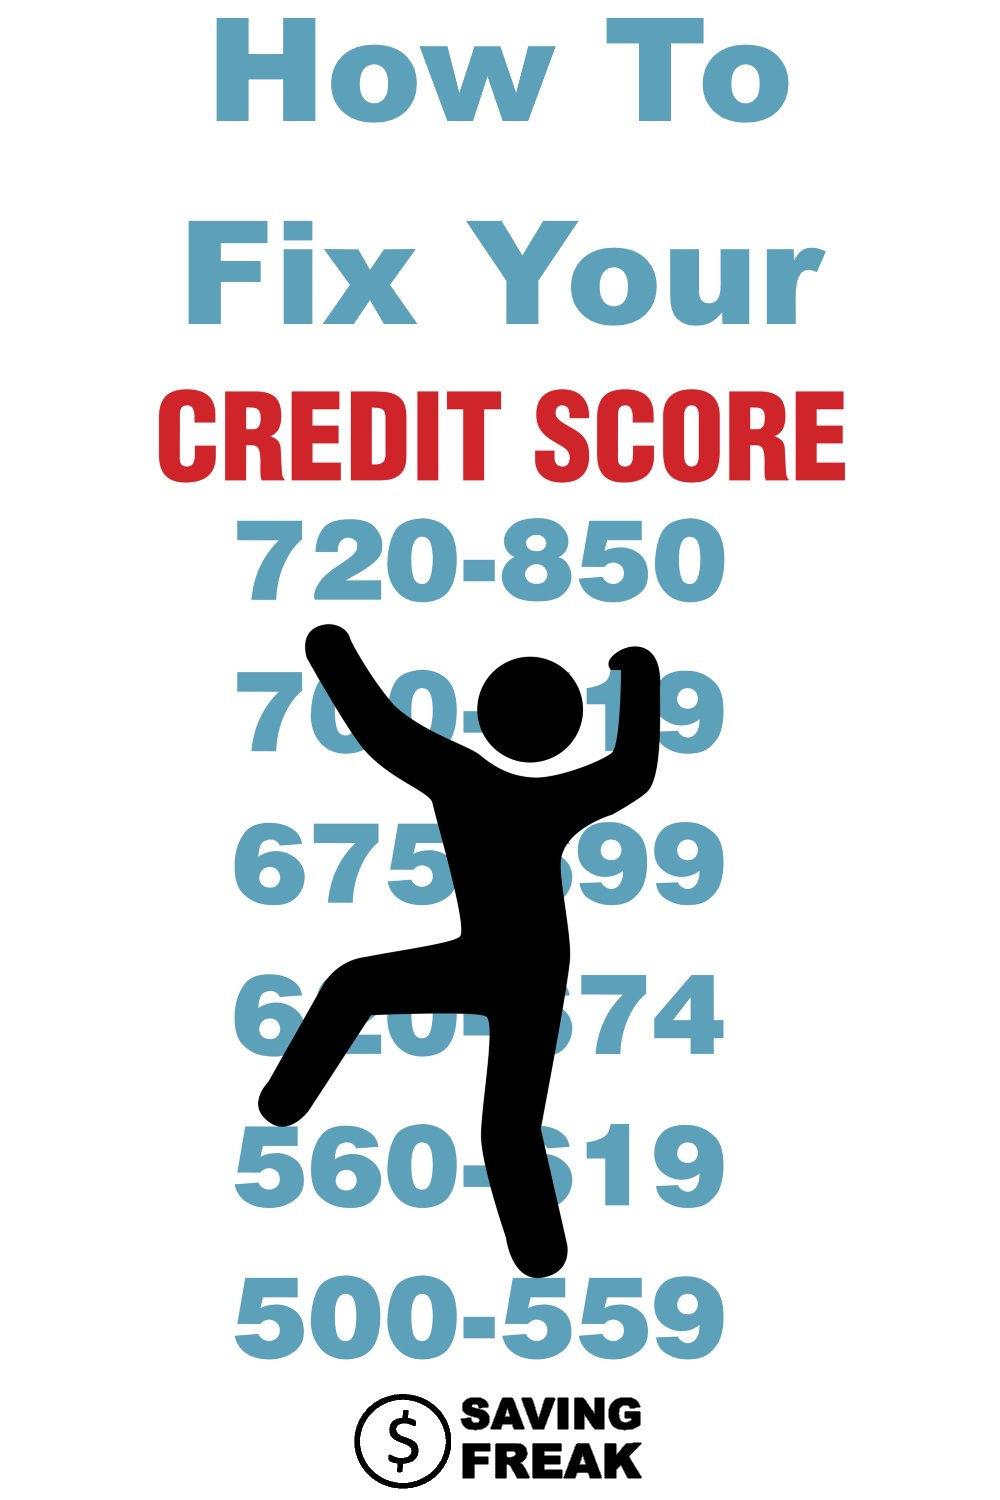 Your credit score determines how much you pay in interest and for a bunch of other needs like insurance and rent. Use this guide to fix your credit and give your credit score a boost.